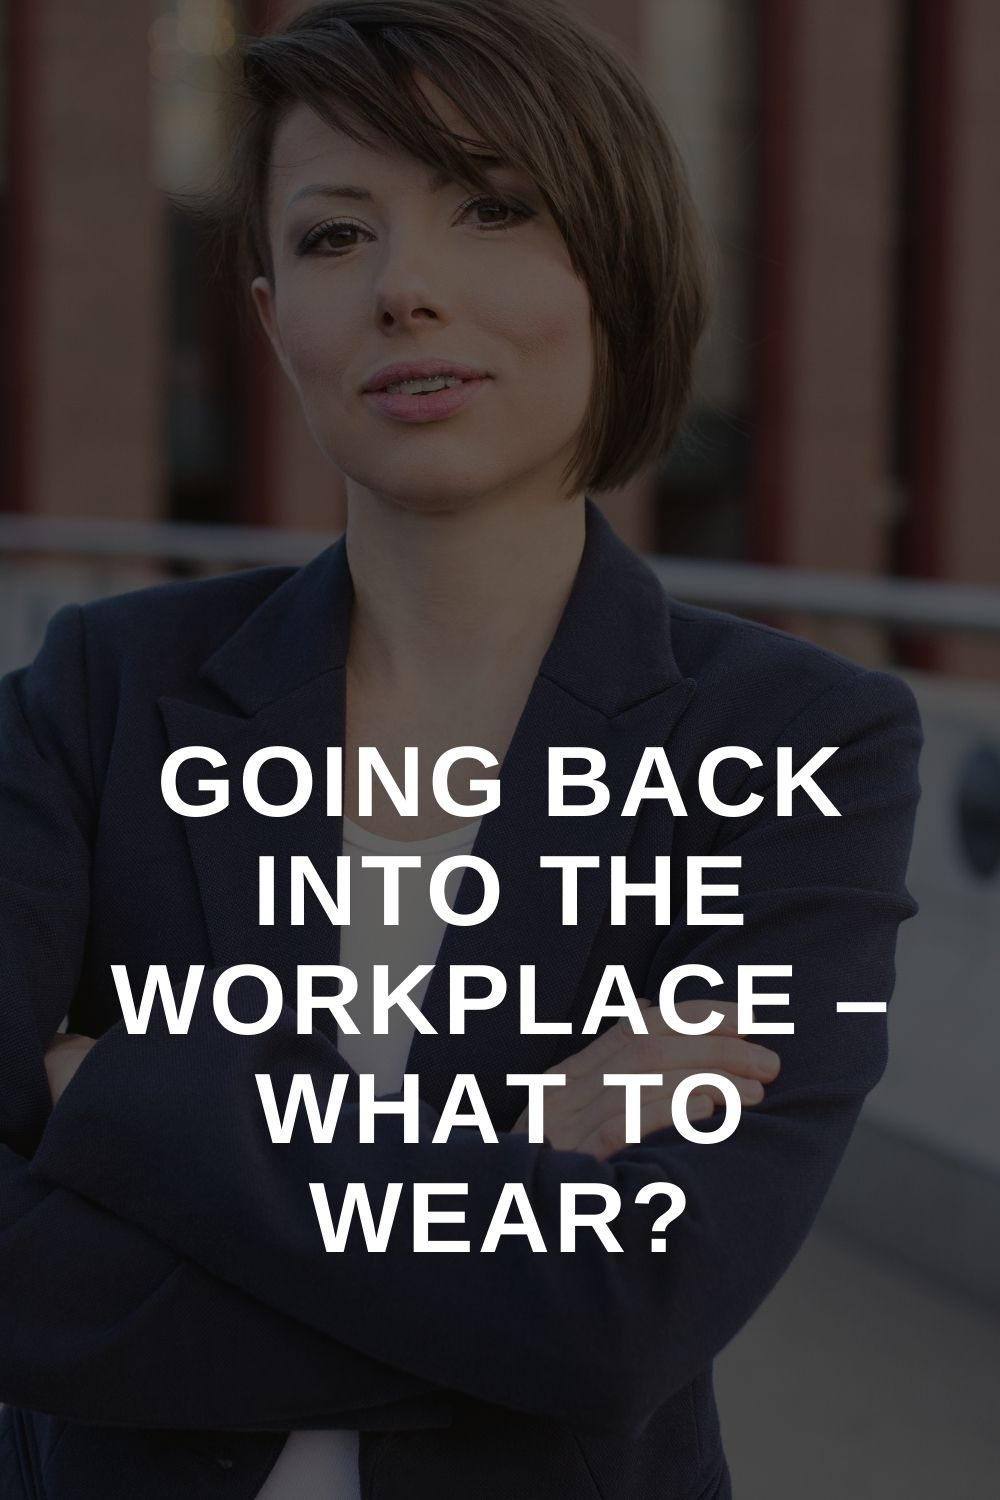 Going Back Into The Workplace – What to Wear?